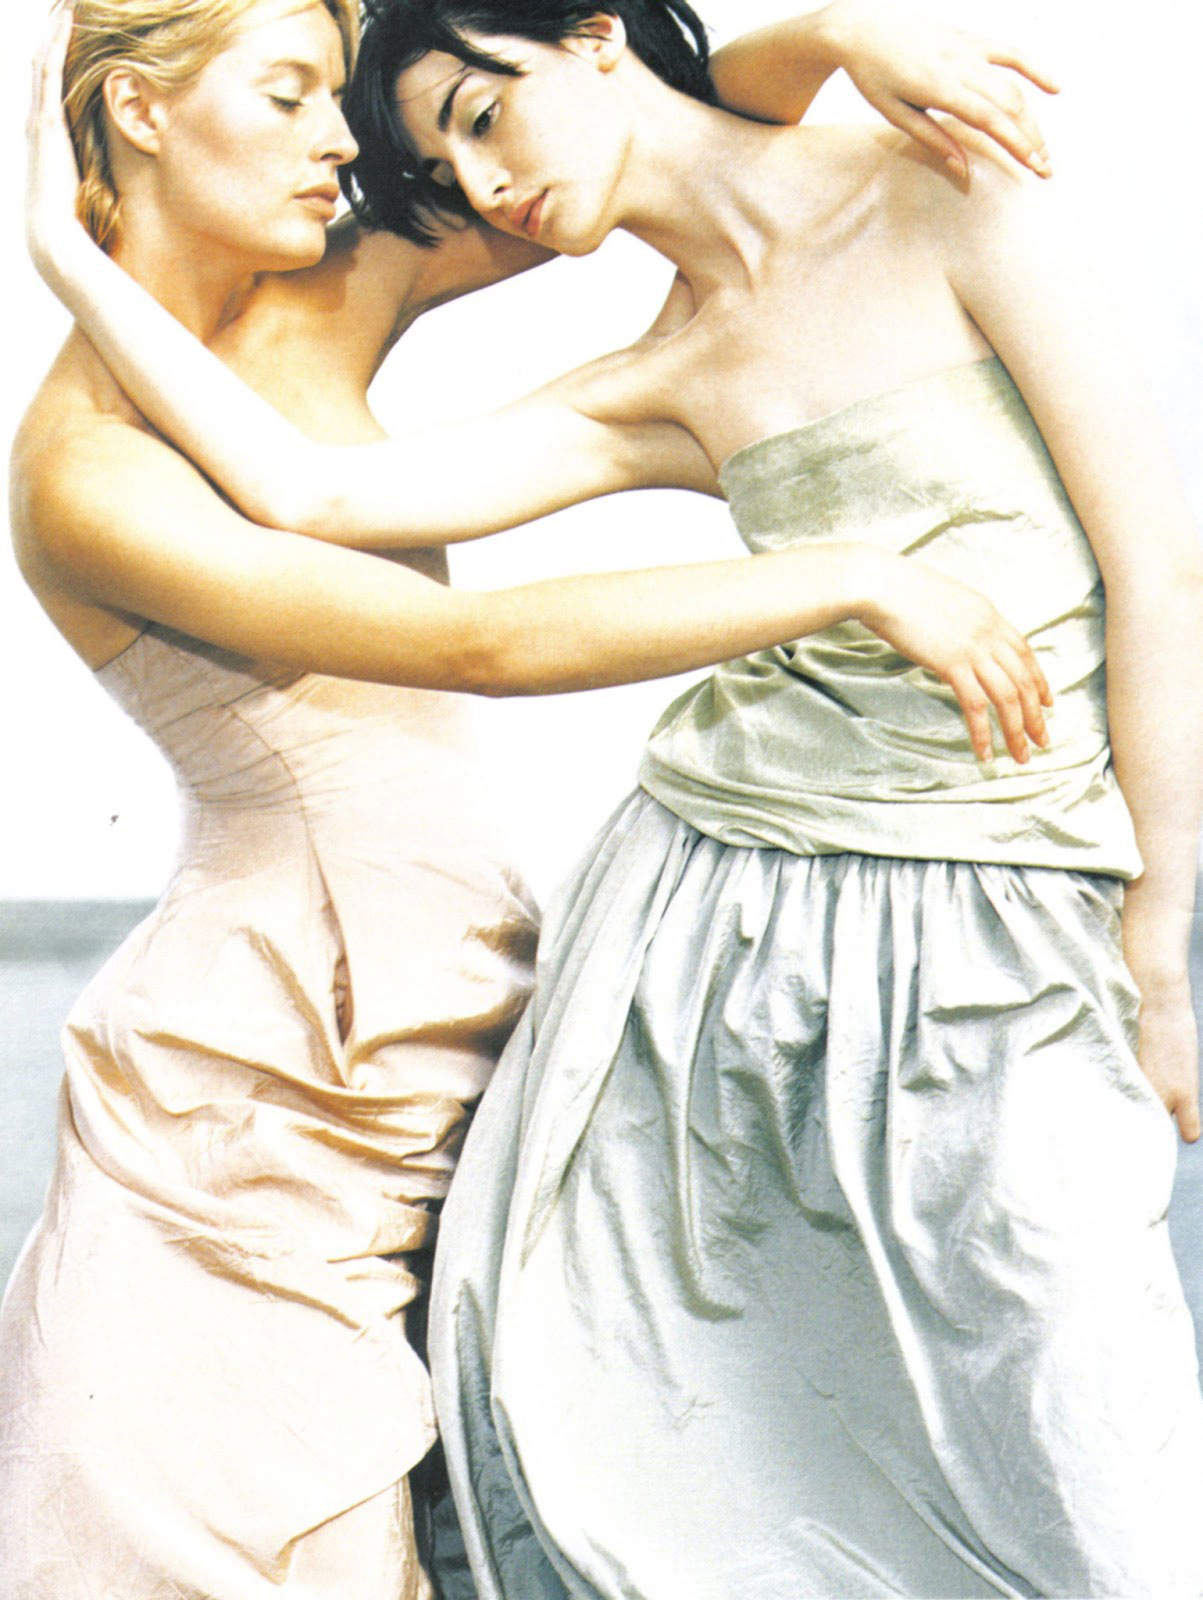 Spring green/white/grey mood board / Annie Morton & Erin O'Connor in Donna Karan Spring/Summer 1999 campaign photographed by Peter Lindbergh via www.fashionedbylove.co.uk